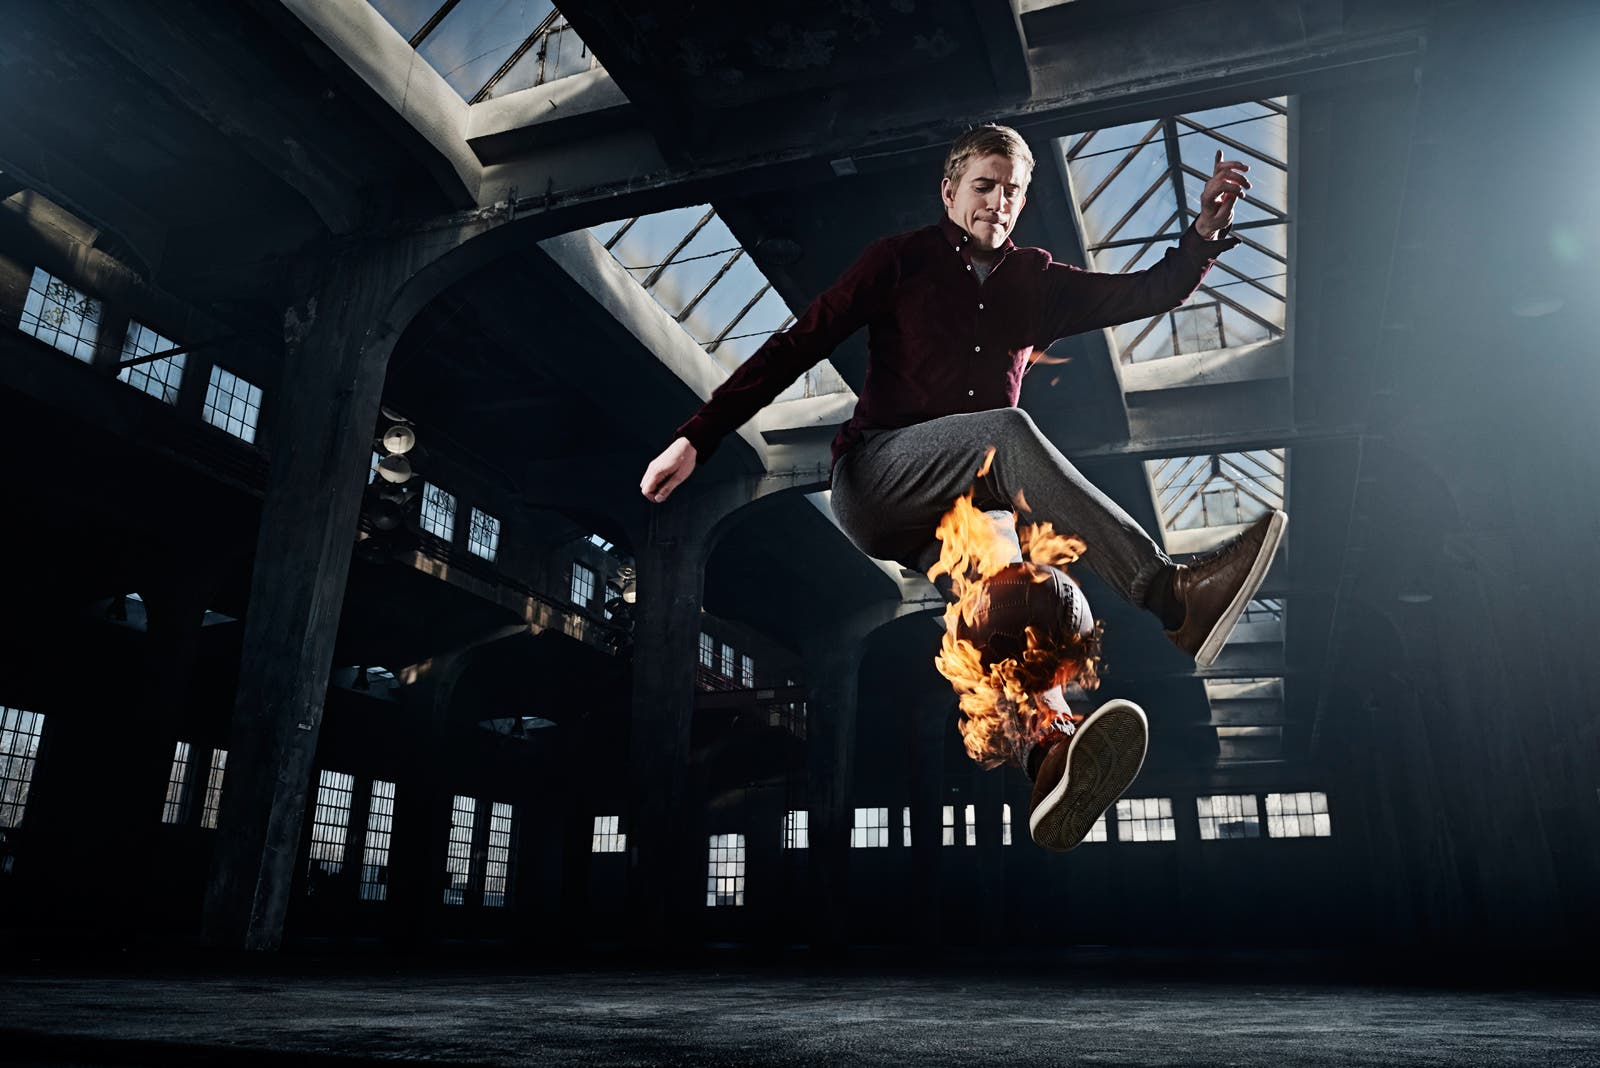 This Shoot Makes Athletes Play With a Fireball